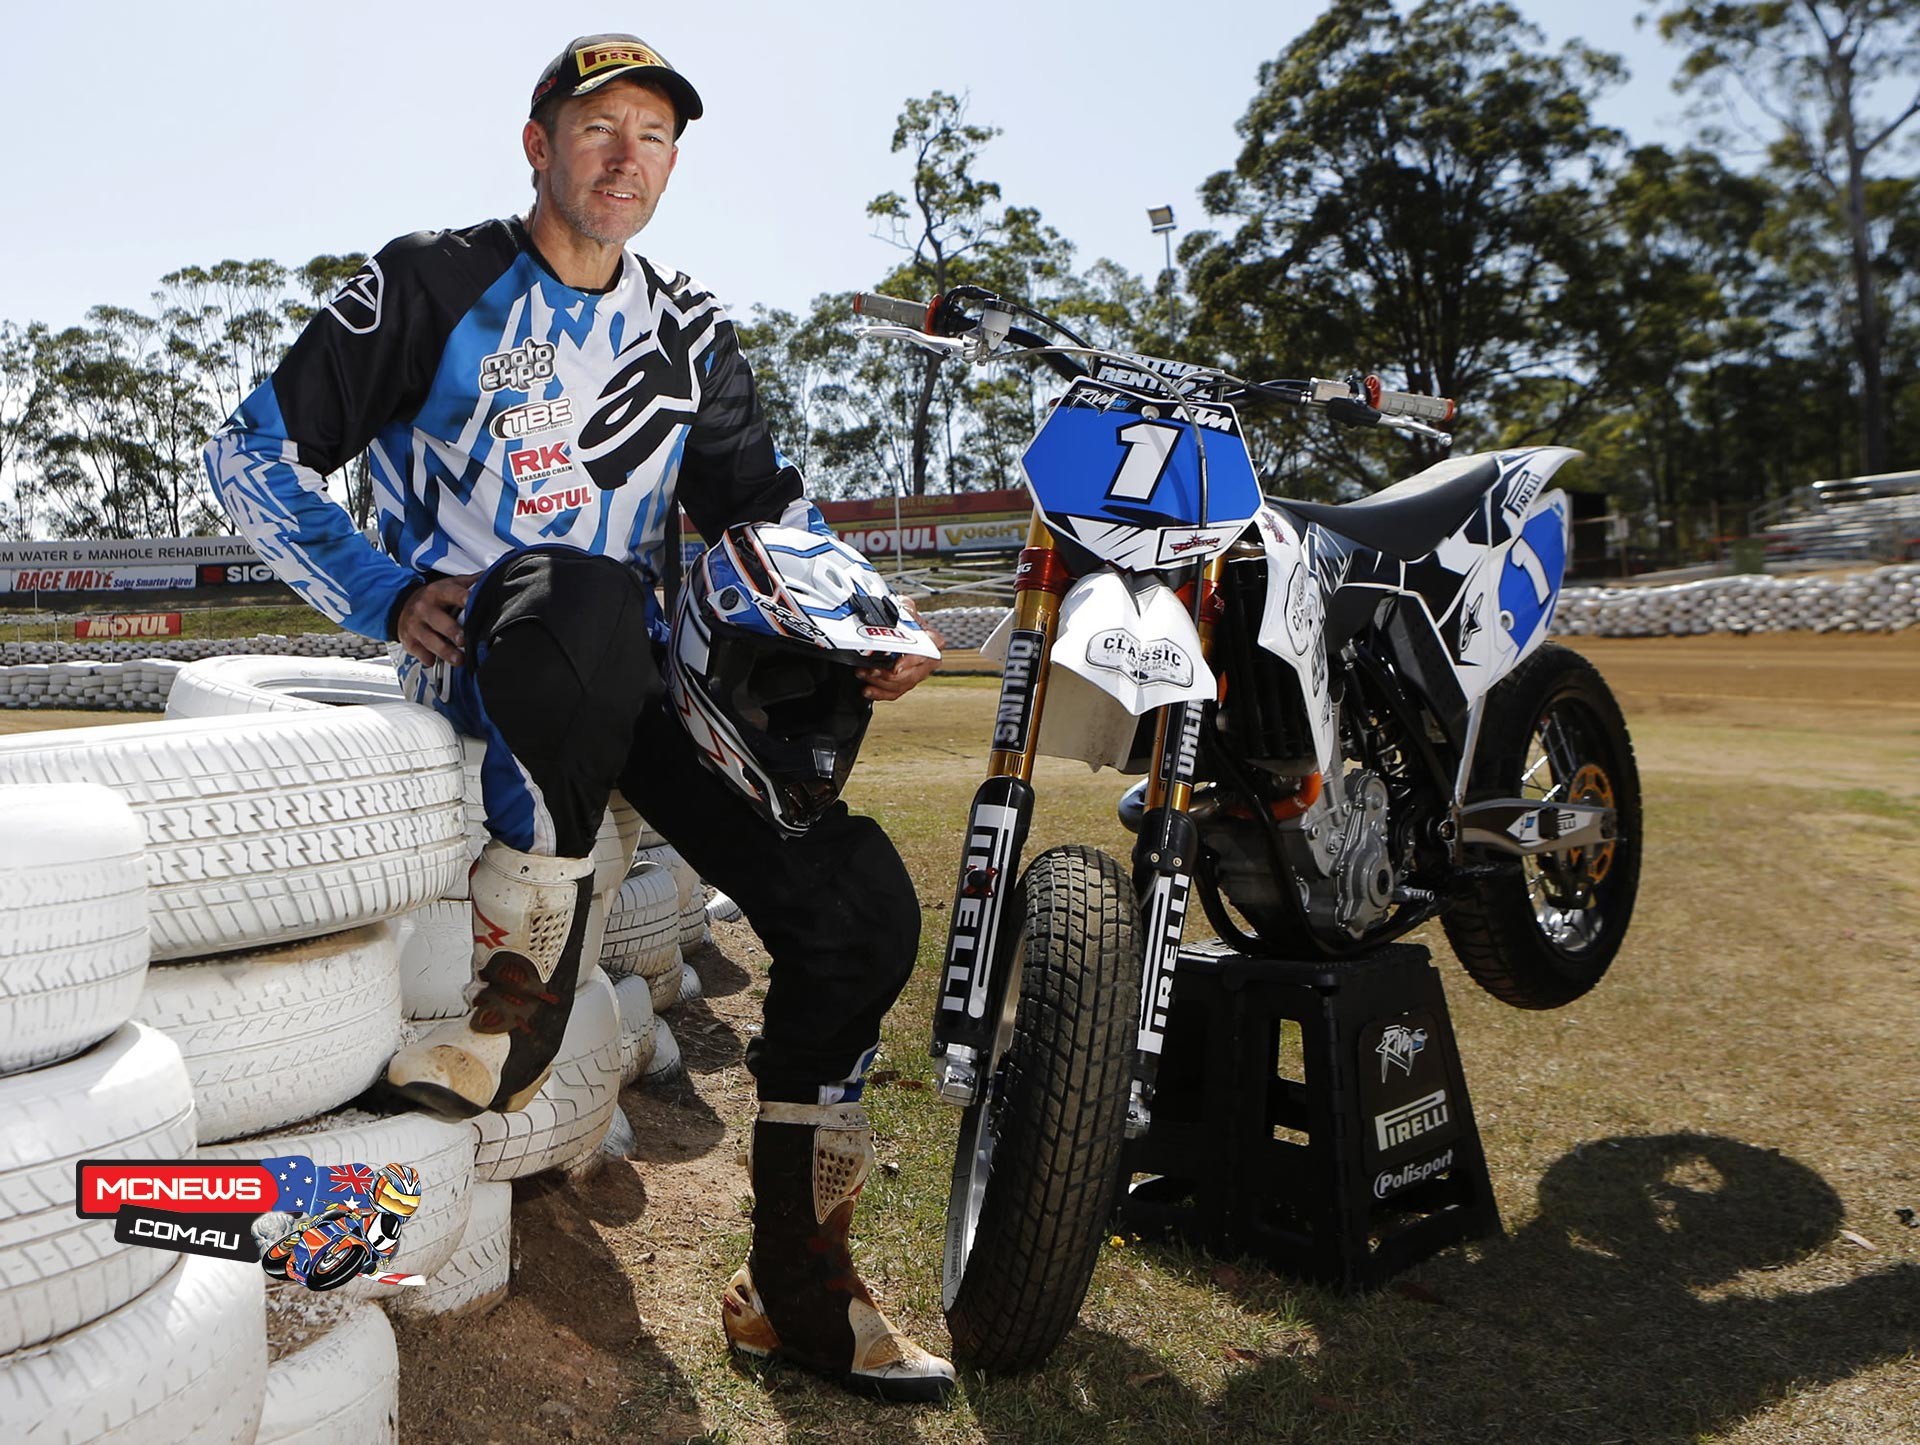 Aussie road racing legend and three-time world Superbike champion Troy Bayliss will take his KTM into arguably its toughest environment yet, at this weekend's Marc Marquez Superprestigio at Palau Sant Jordi Arena in Barcelona.